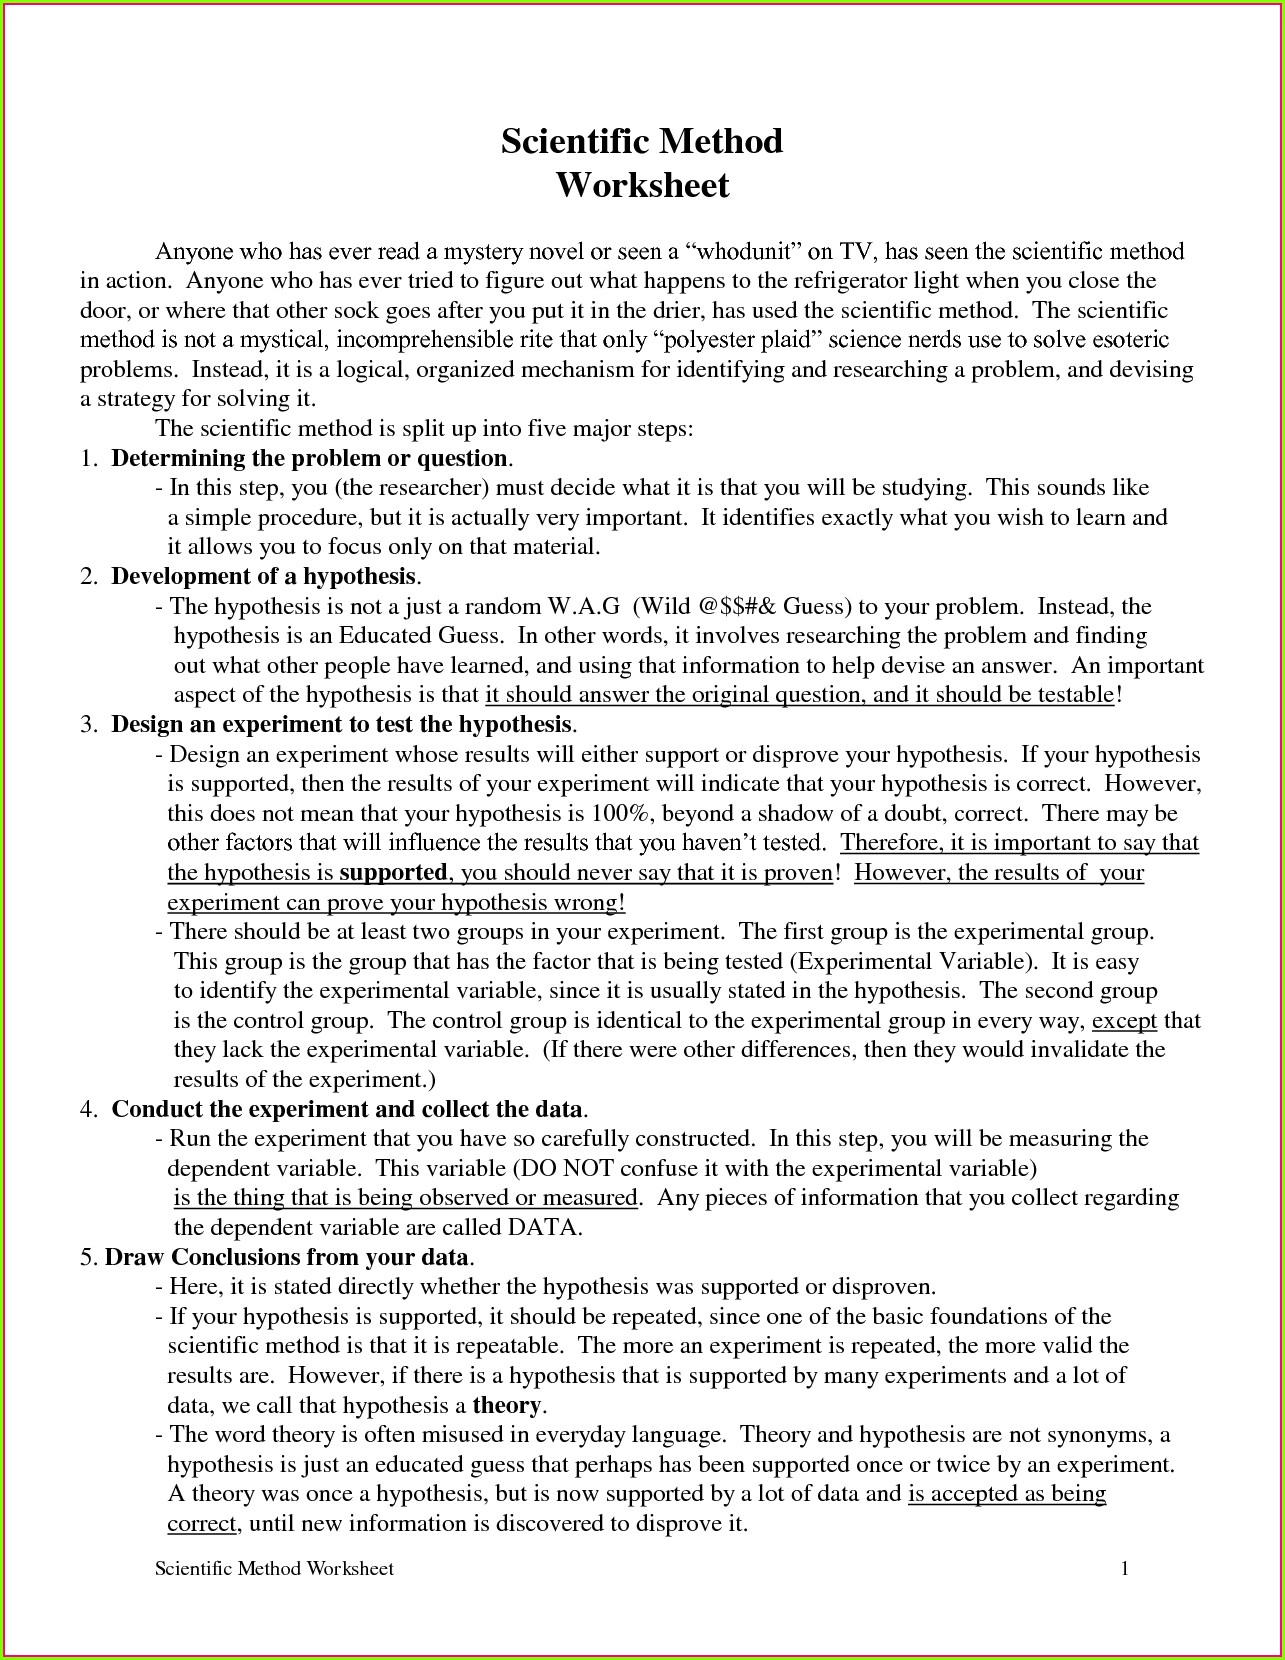 Scientific Method Worksheet High School Pdf